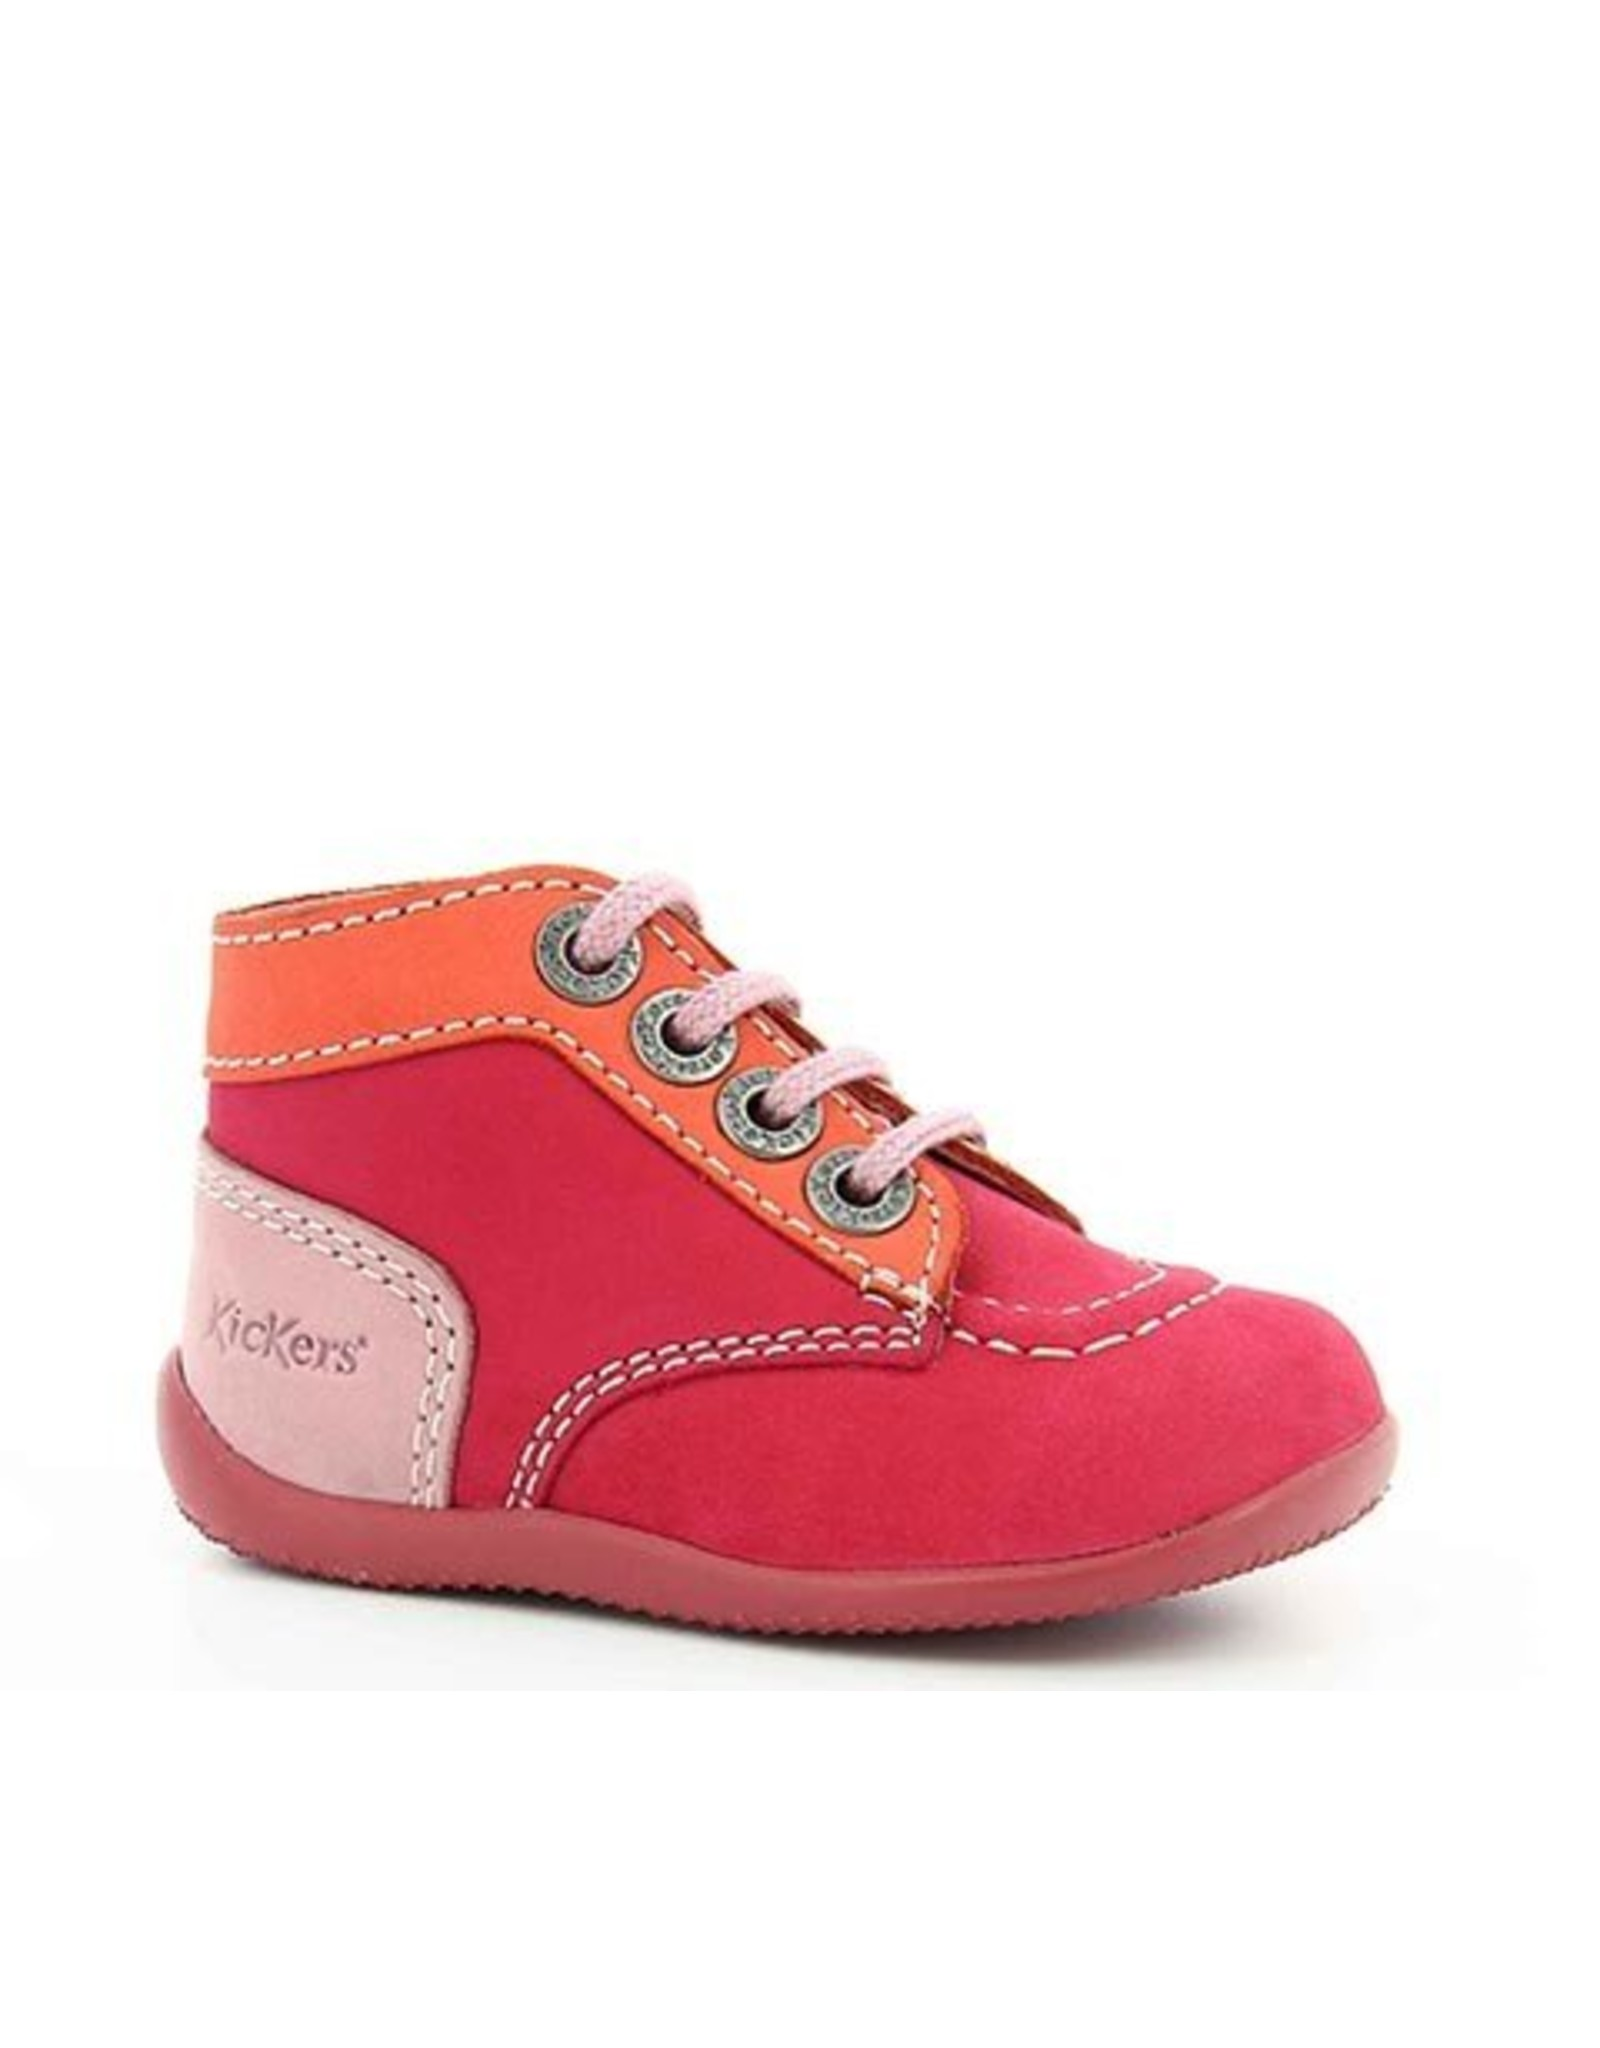 KICKERS BONBON FUCHSIA ORANGE ROSE KR3FO 18E446827-10